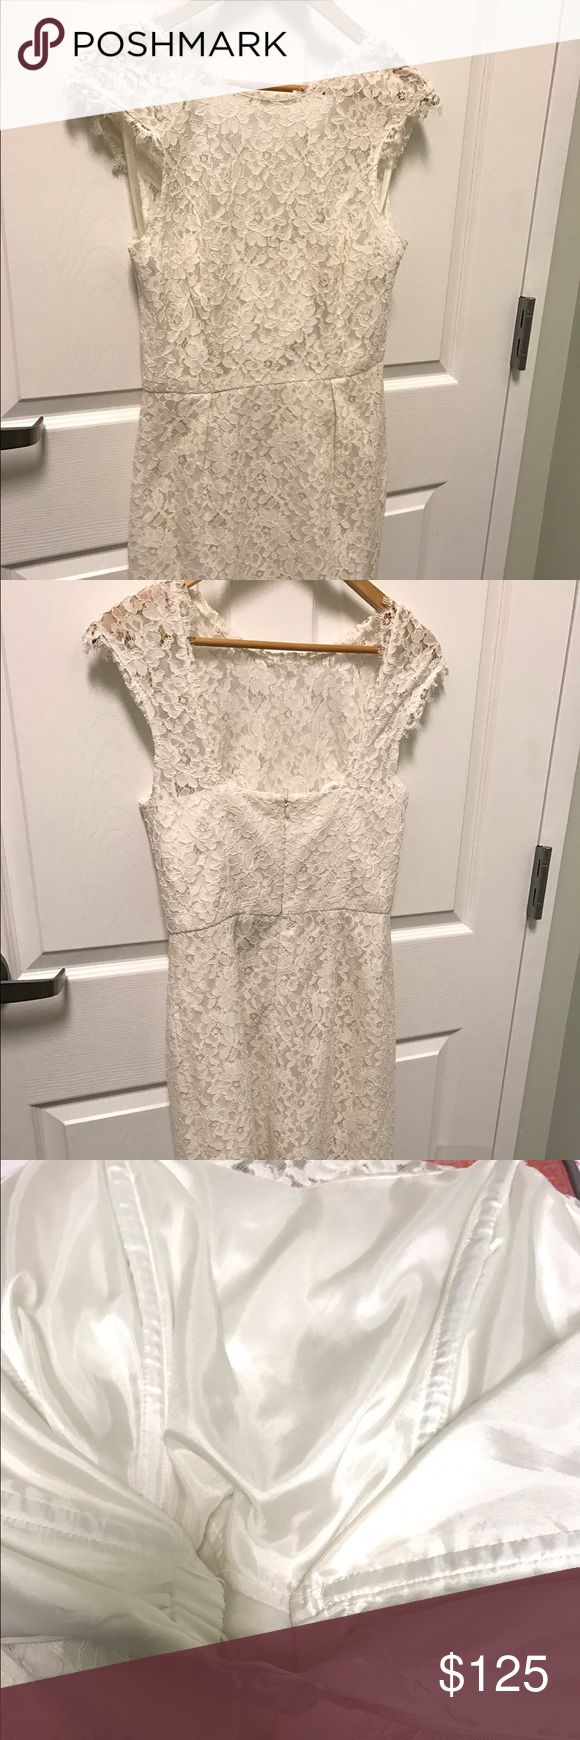 Shoshanna Ivory Scarlett Dress Ivory Scarlett Dress, excellent condition. Worn once! The bodice has boning and support so no bra is needed. Shoshanna Dresses Mini